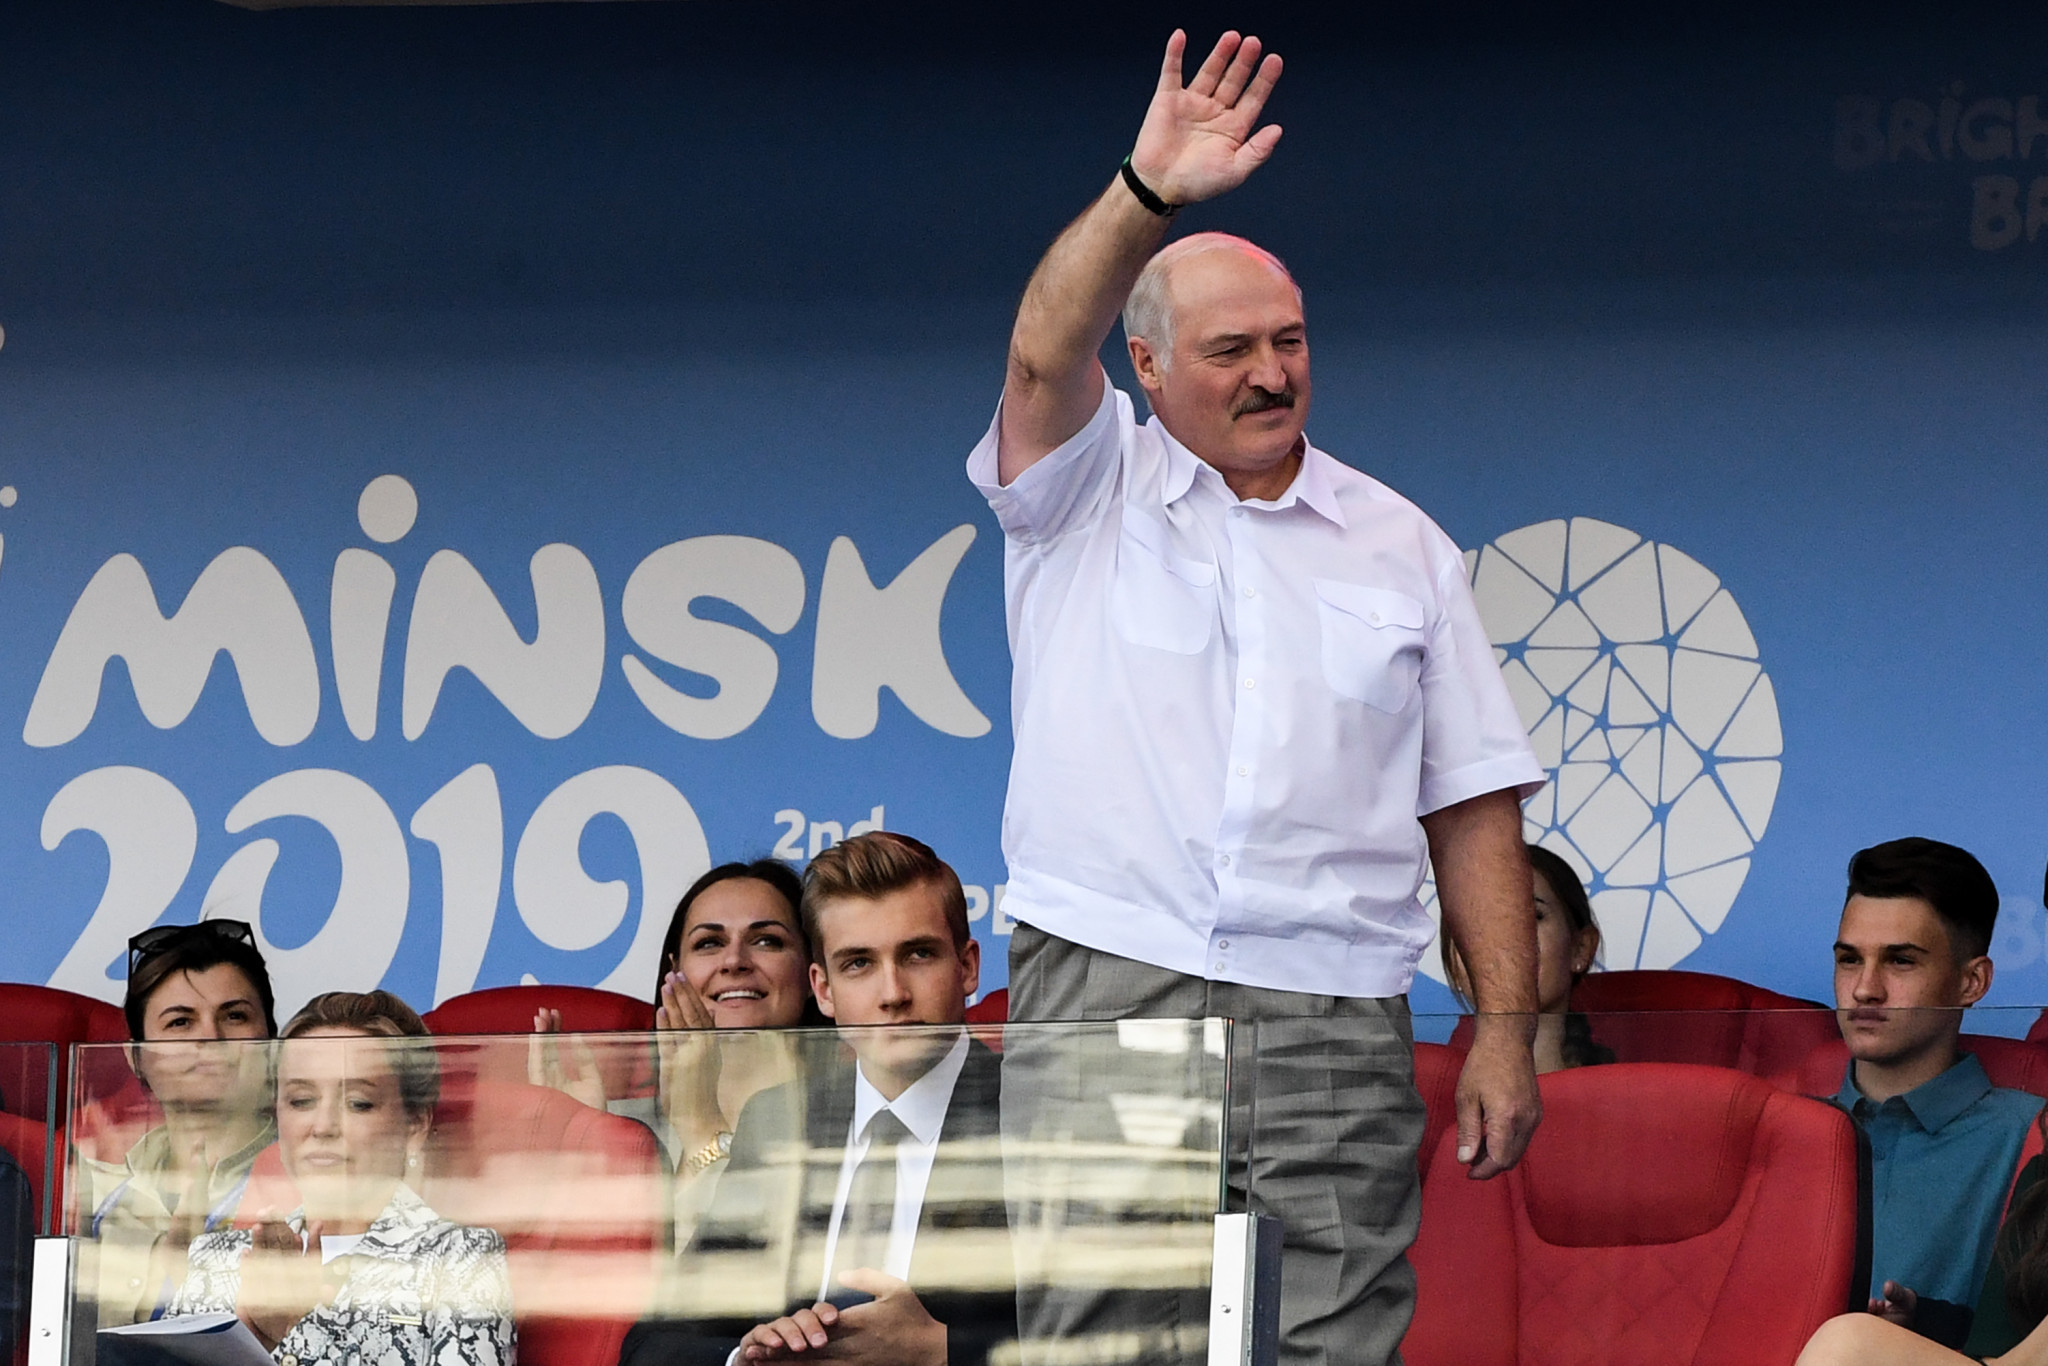 Alexander Lukashenko is a key figure in the sporting world as head of the National Olympic Committee of the Republic of Belarus ©Getty Images